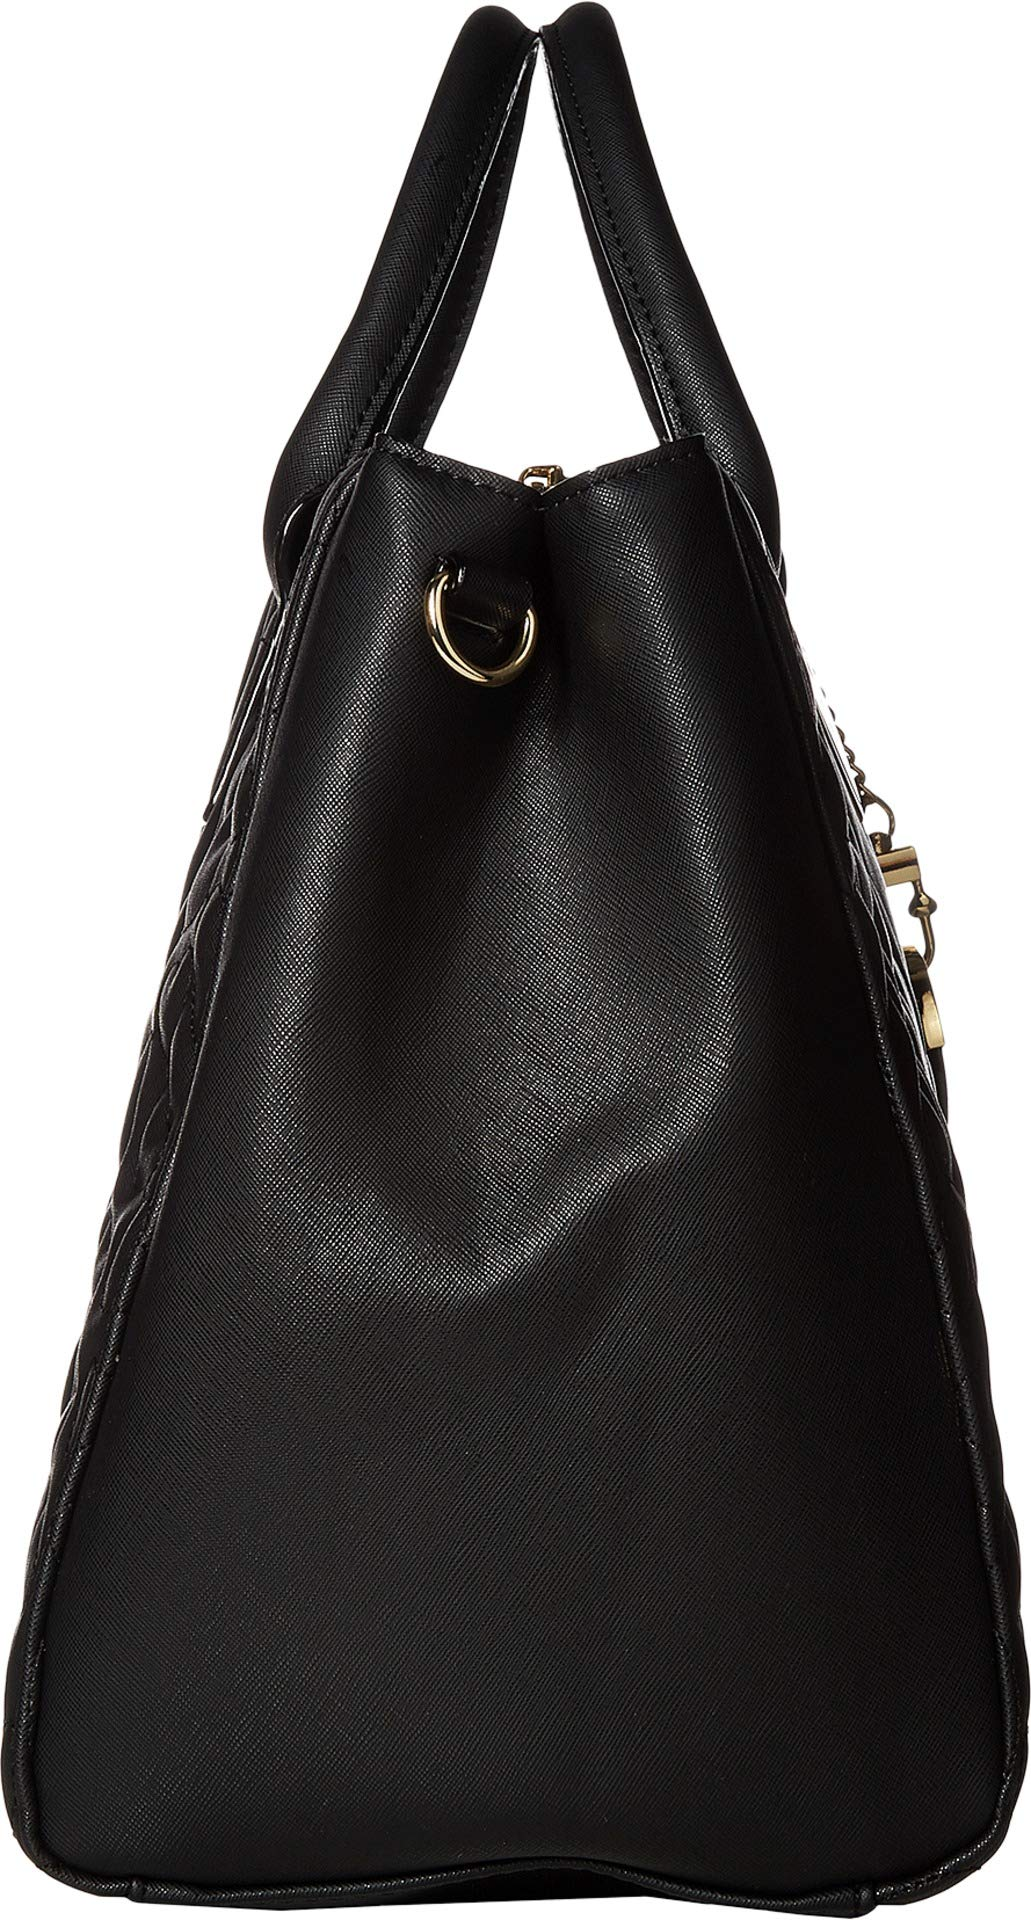 Betsey Johnson Women's Structured Quilt Satchel Black One Size by Betsey Johnson (Image #3)